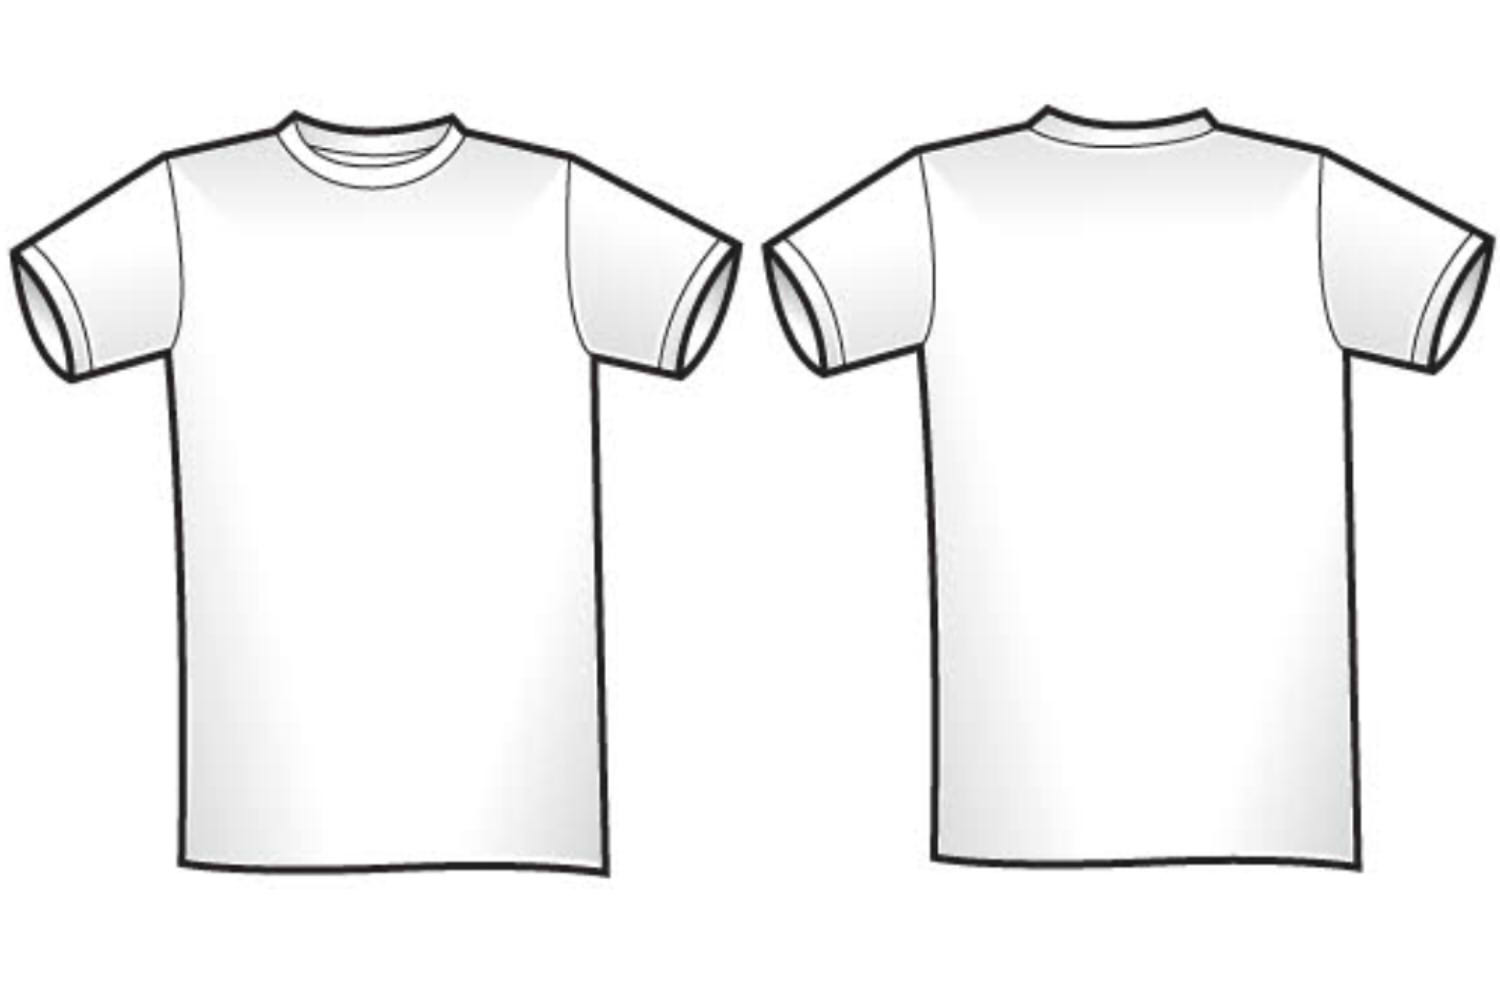 Free Blank T Shirt Outline Download Free Clip Art Free Clip Art On Clipart Library